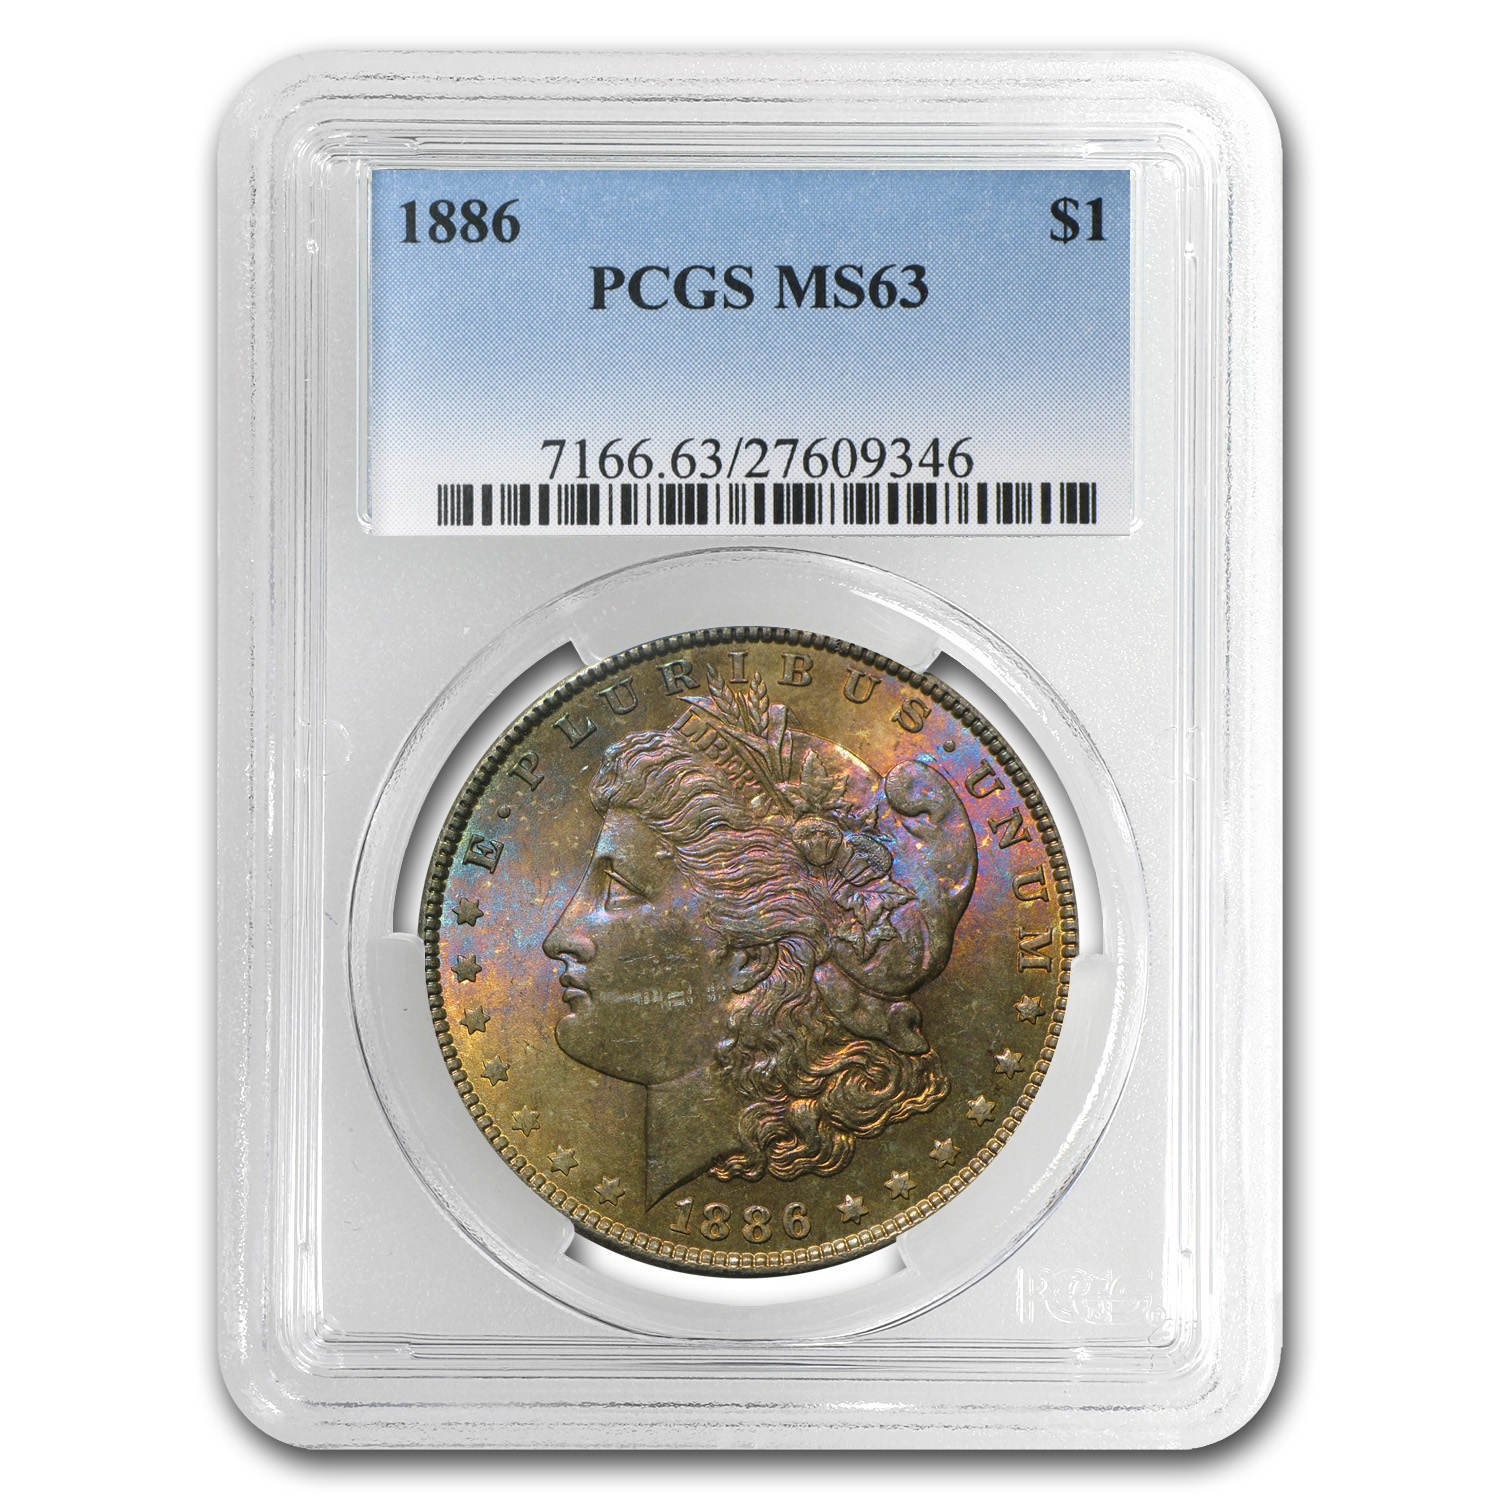 1878-1904 Morgan Dollars - MS-63 PCGS - Beautifully Toned